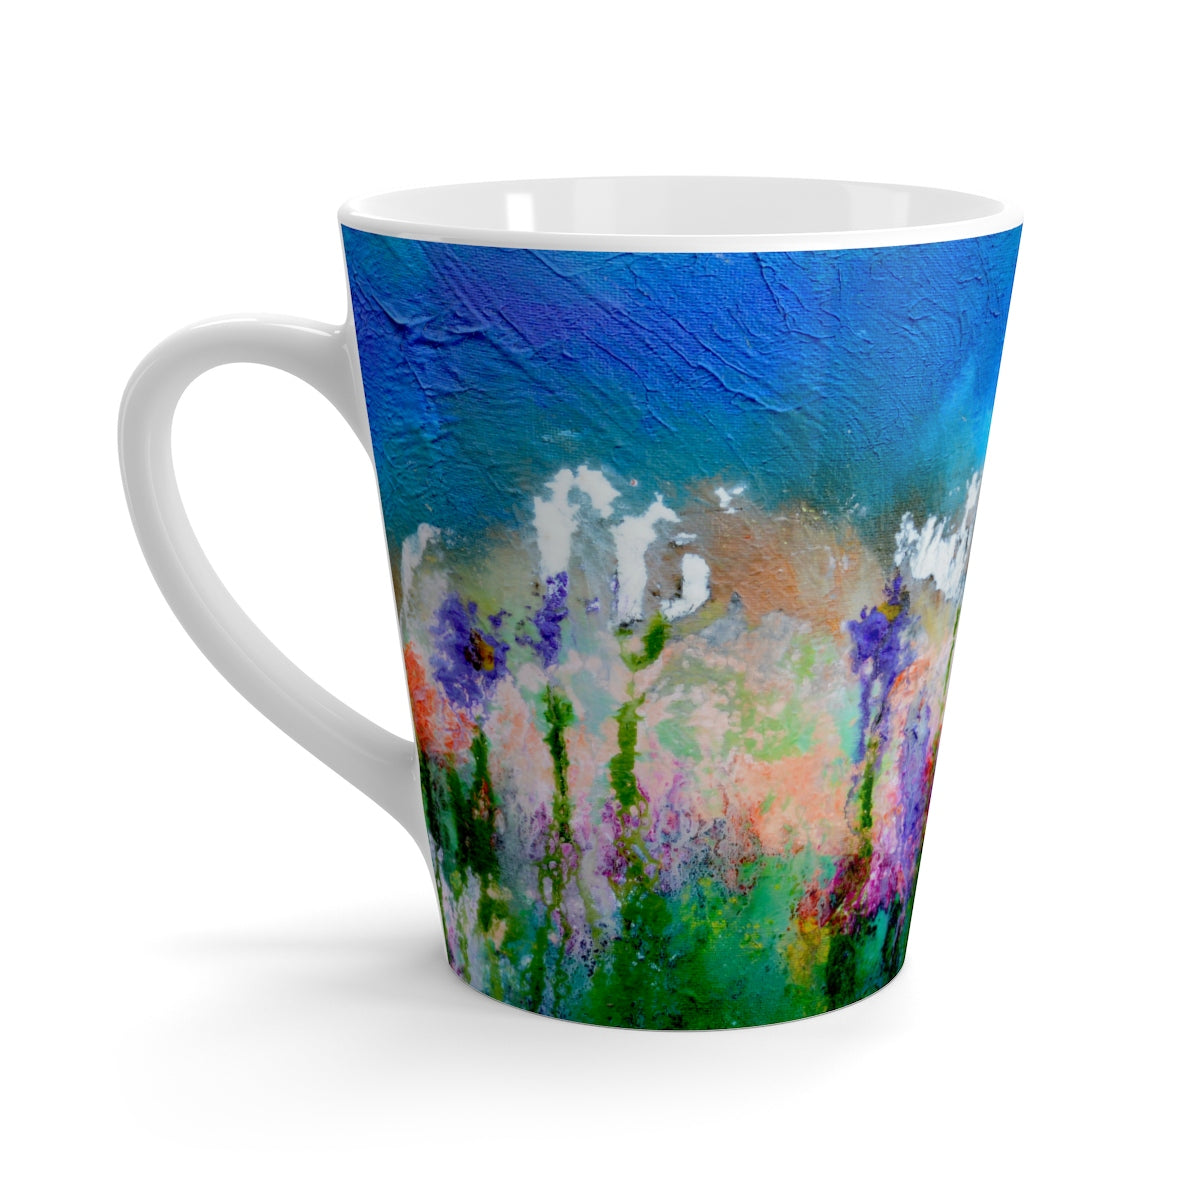 Latte Mug - 'Something About Spring'